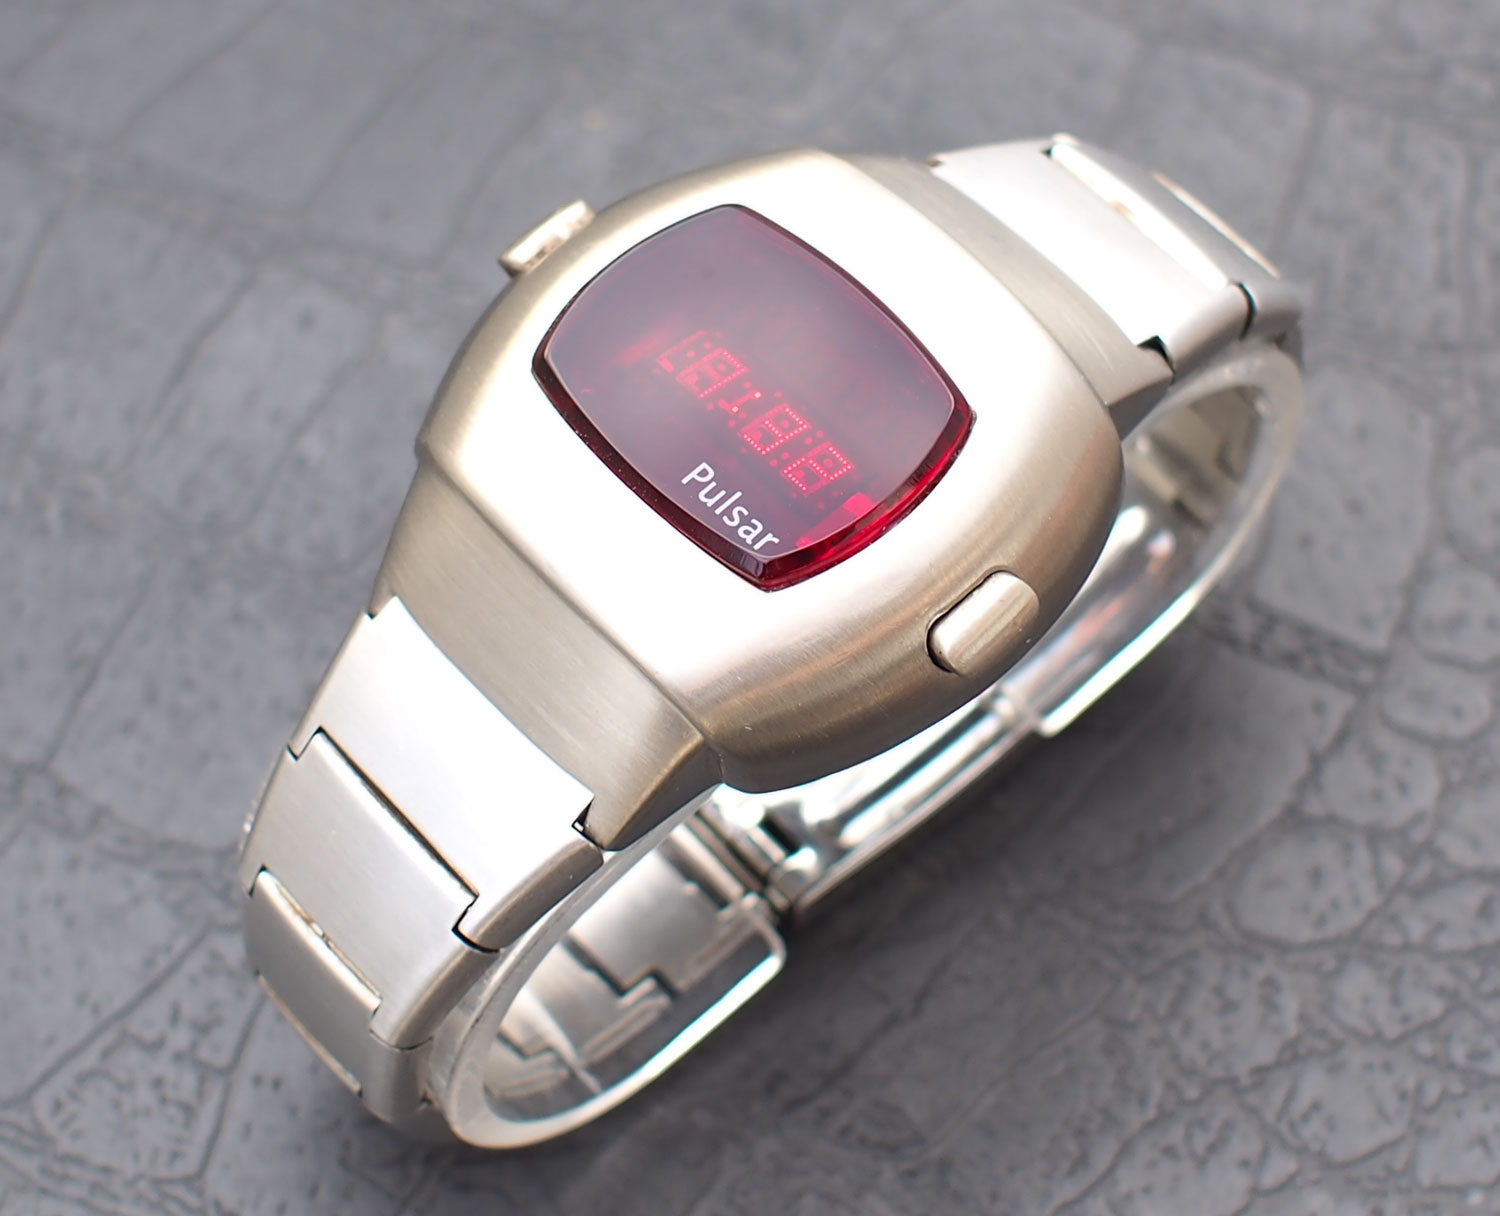 Stainless Steel Vintage Pulsar P3 Led Watch Time Computer